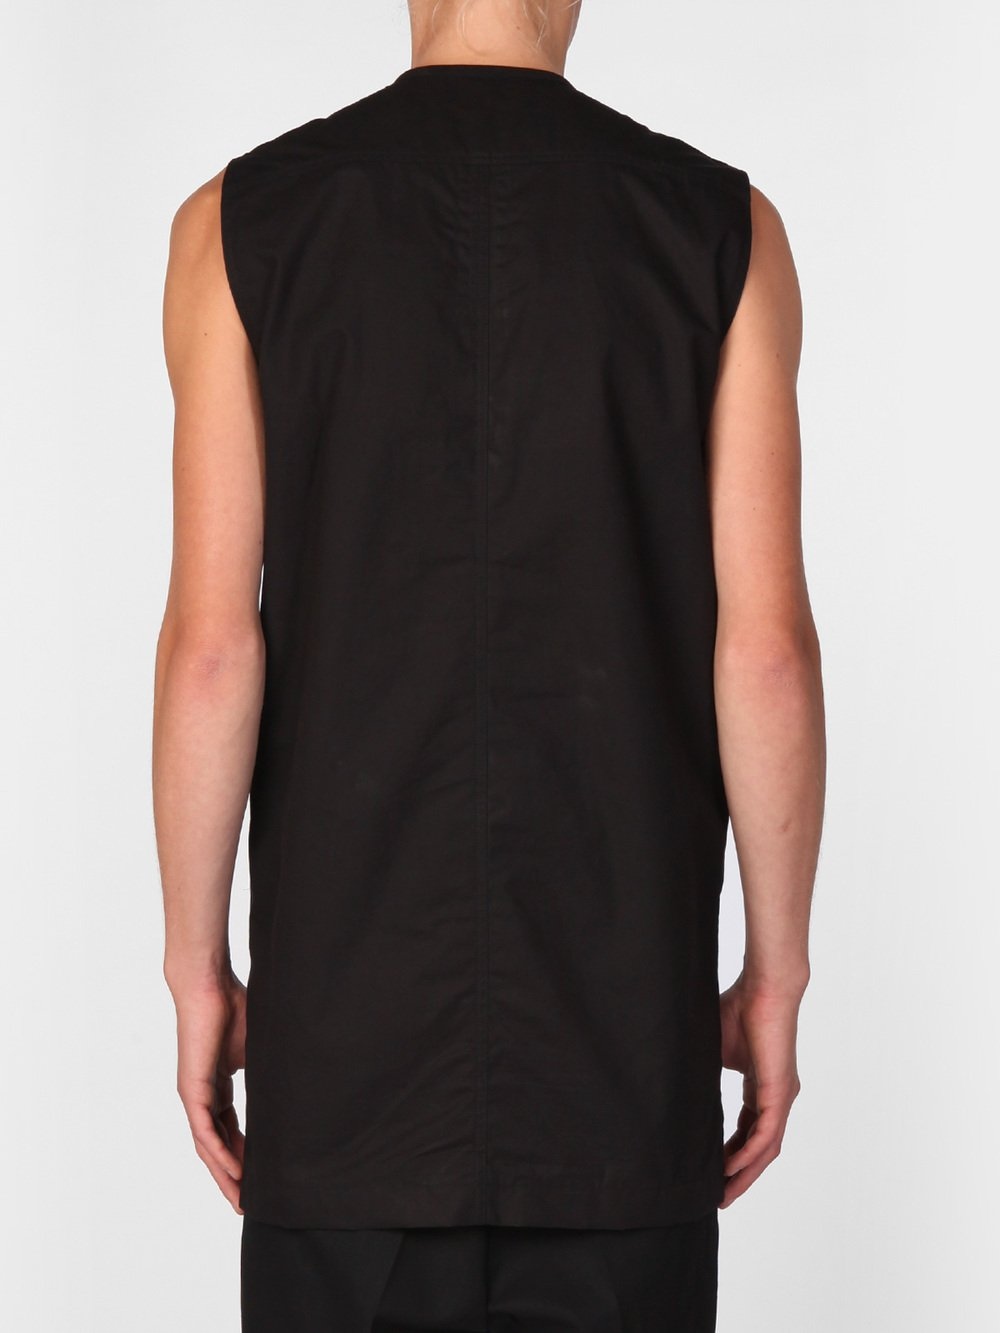 RICK OWENS - SLEEVELESS BIKER SHIRT